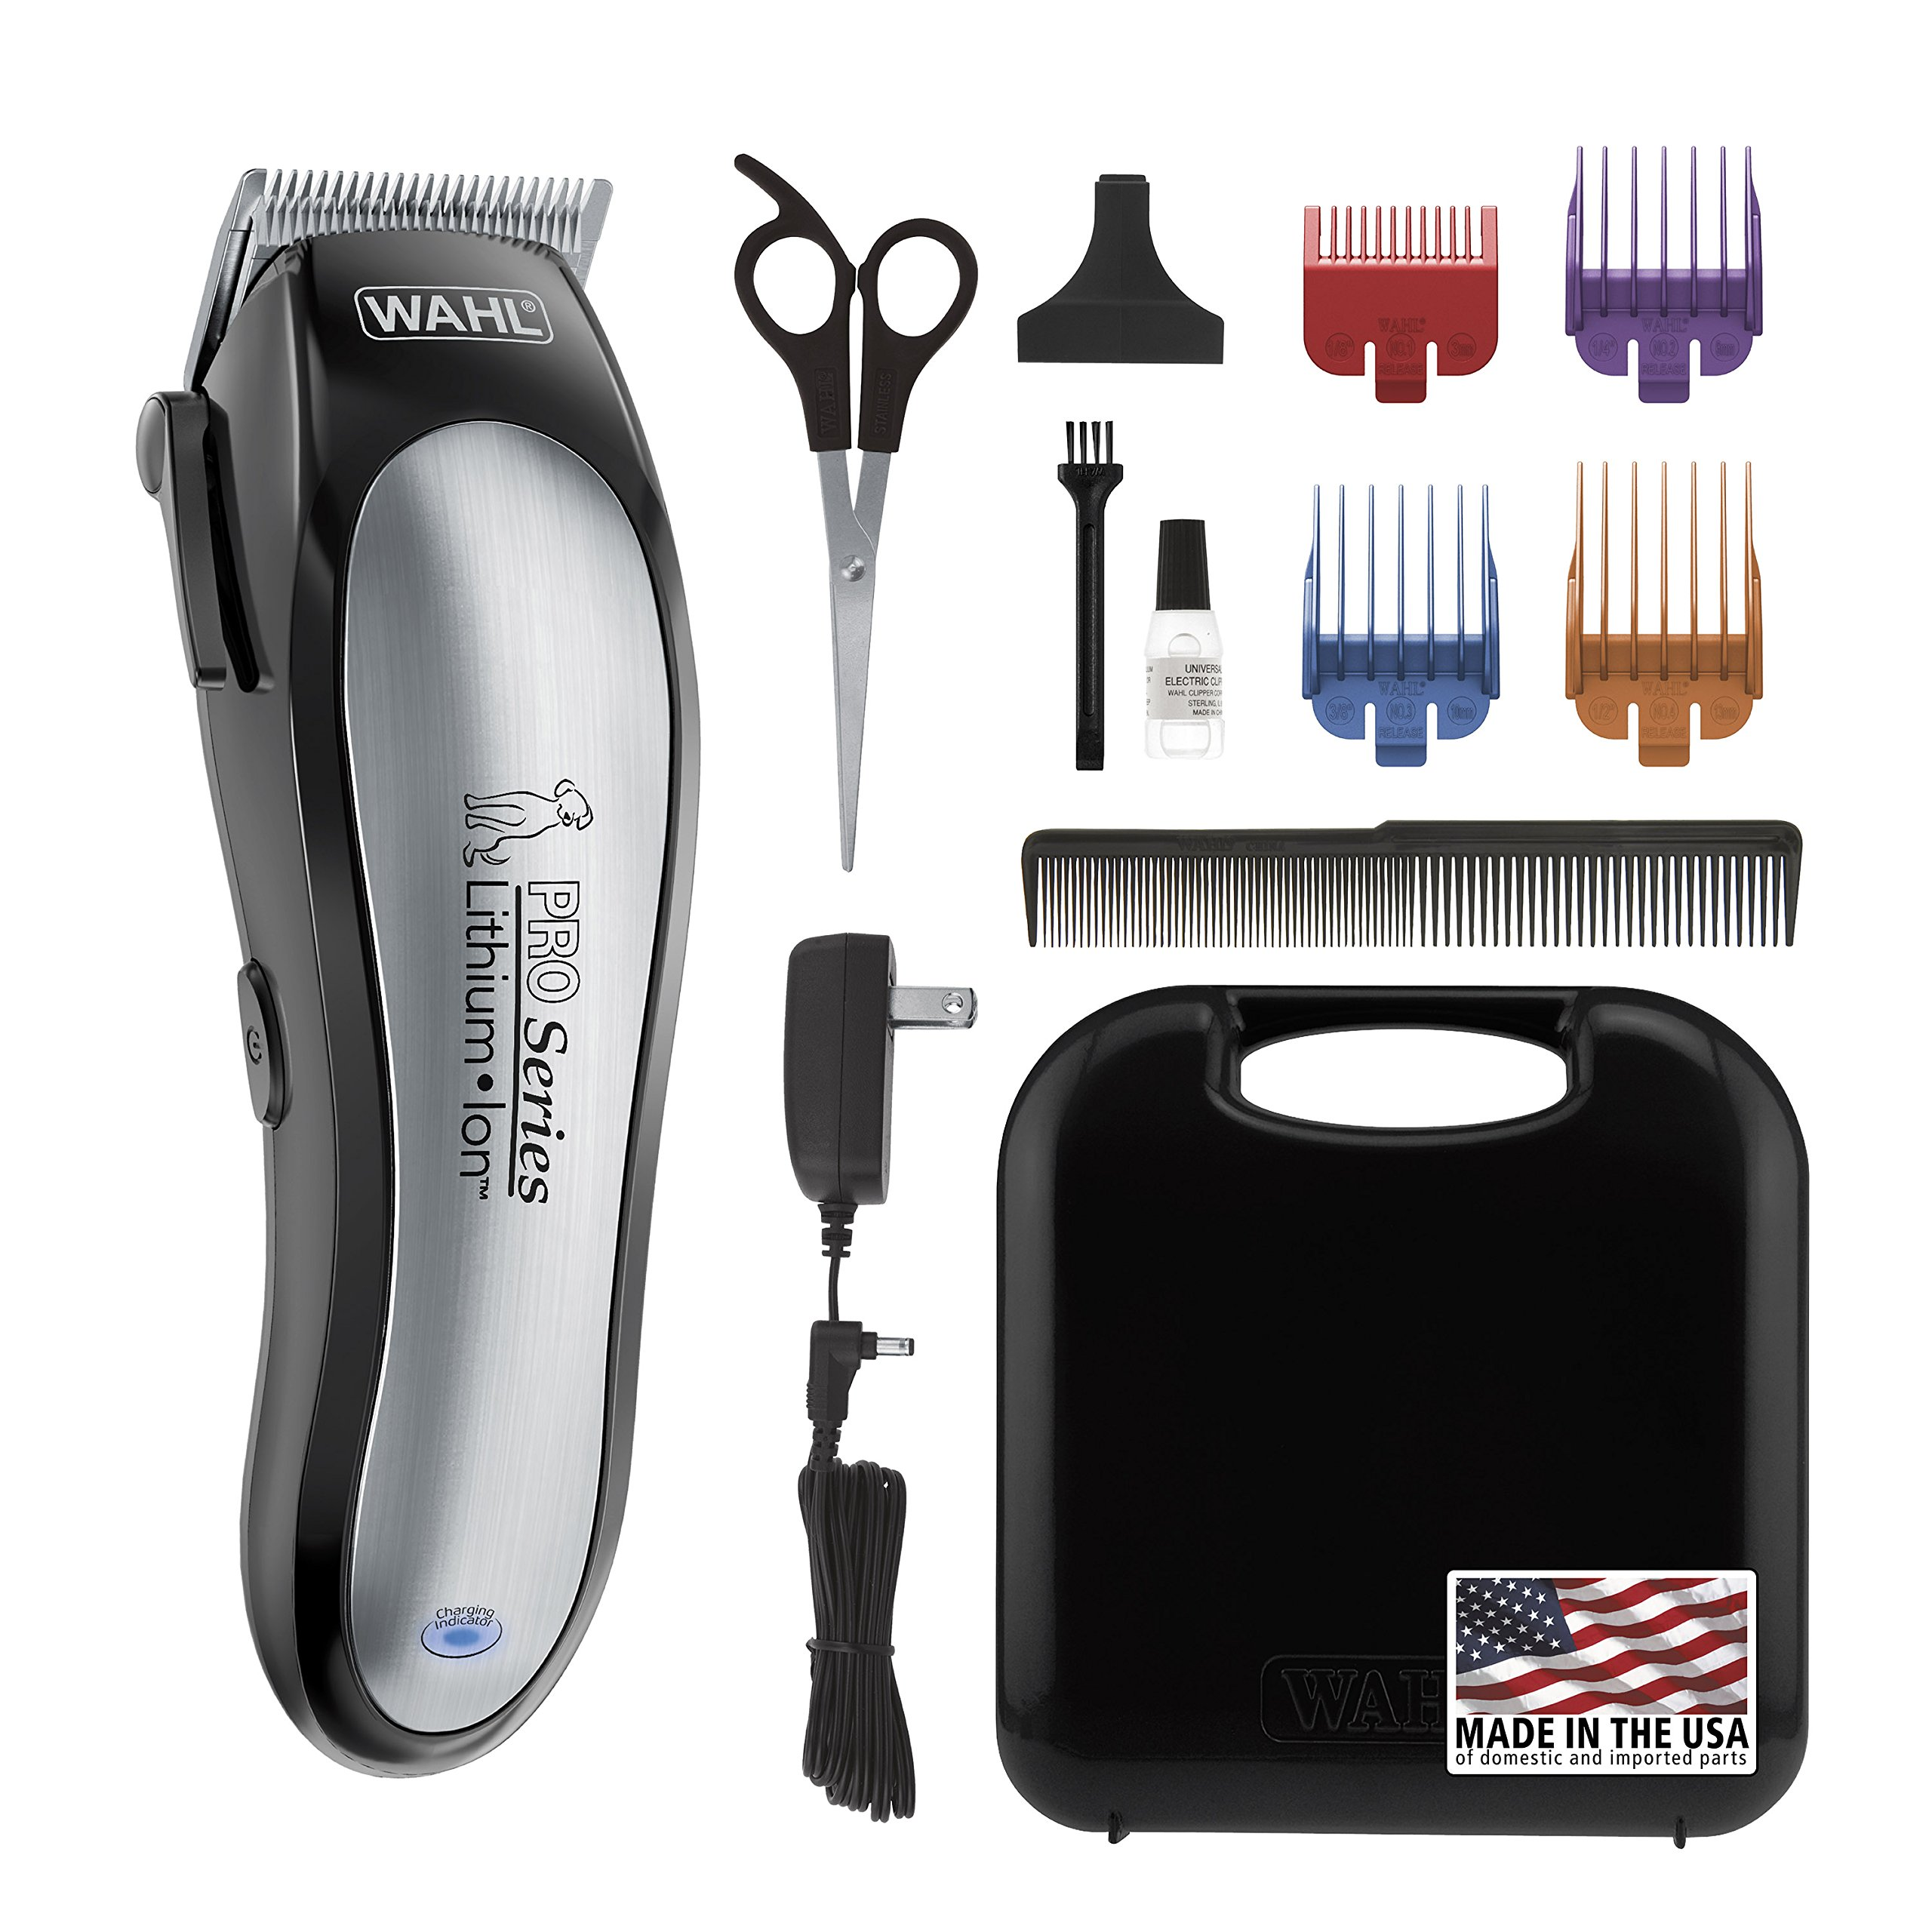 WAHL Lithium Ion Pro Series Cordless Animal Clippers - Rechargeable Quiet Low Noise Heavy-Duty Electric Dog & Cat Grooming Kit for Small & Large Breeds with Thick & Heavy Coats - Model 9766 by WAHL